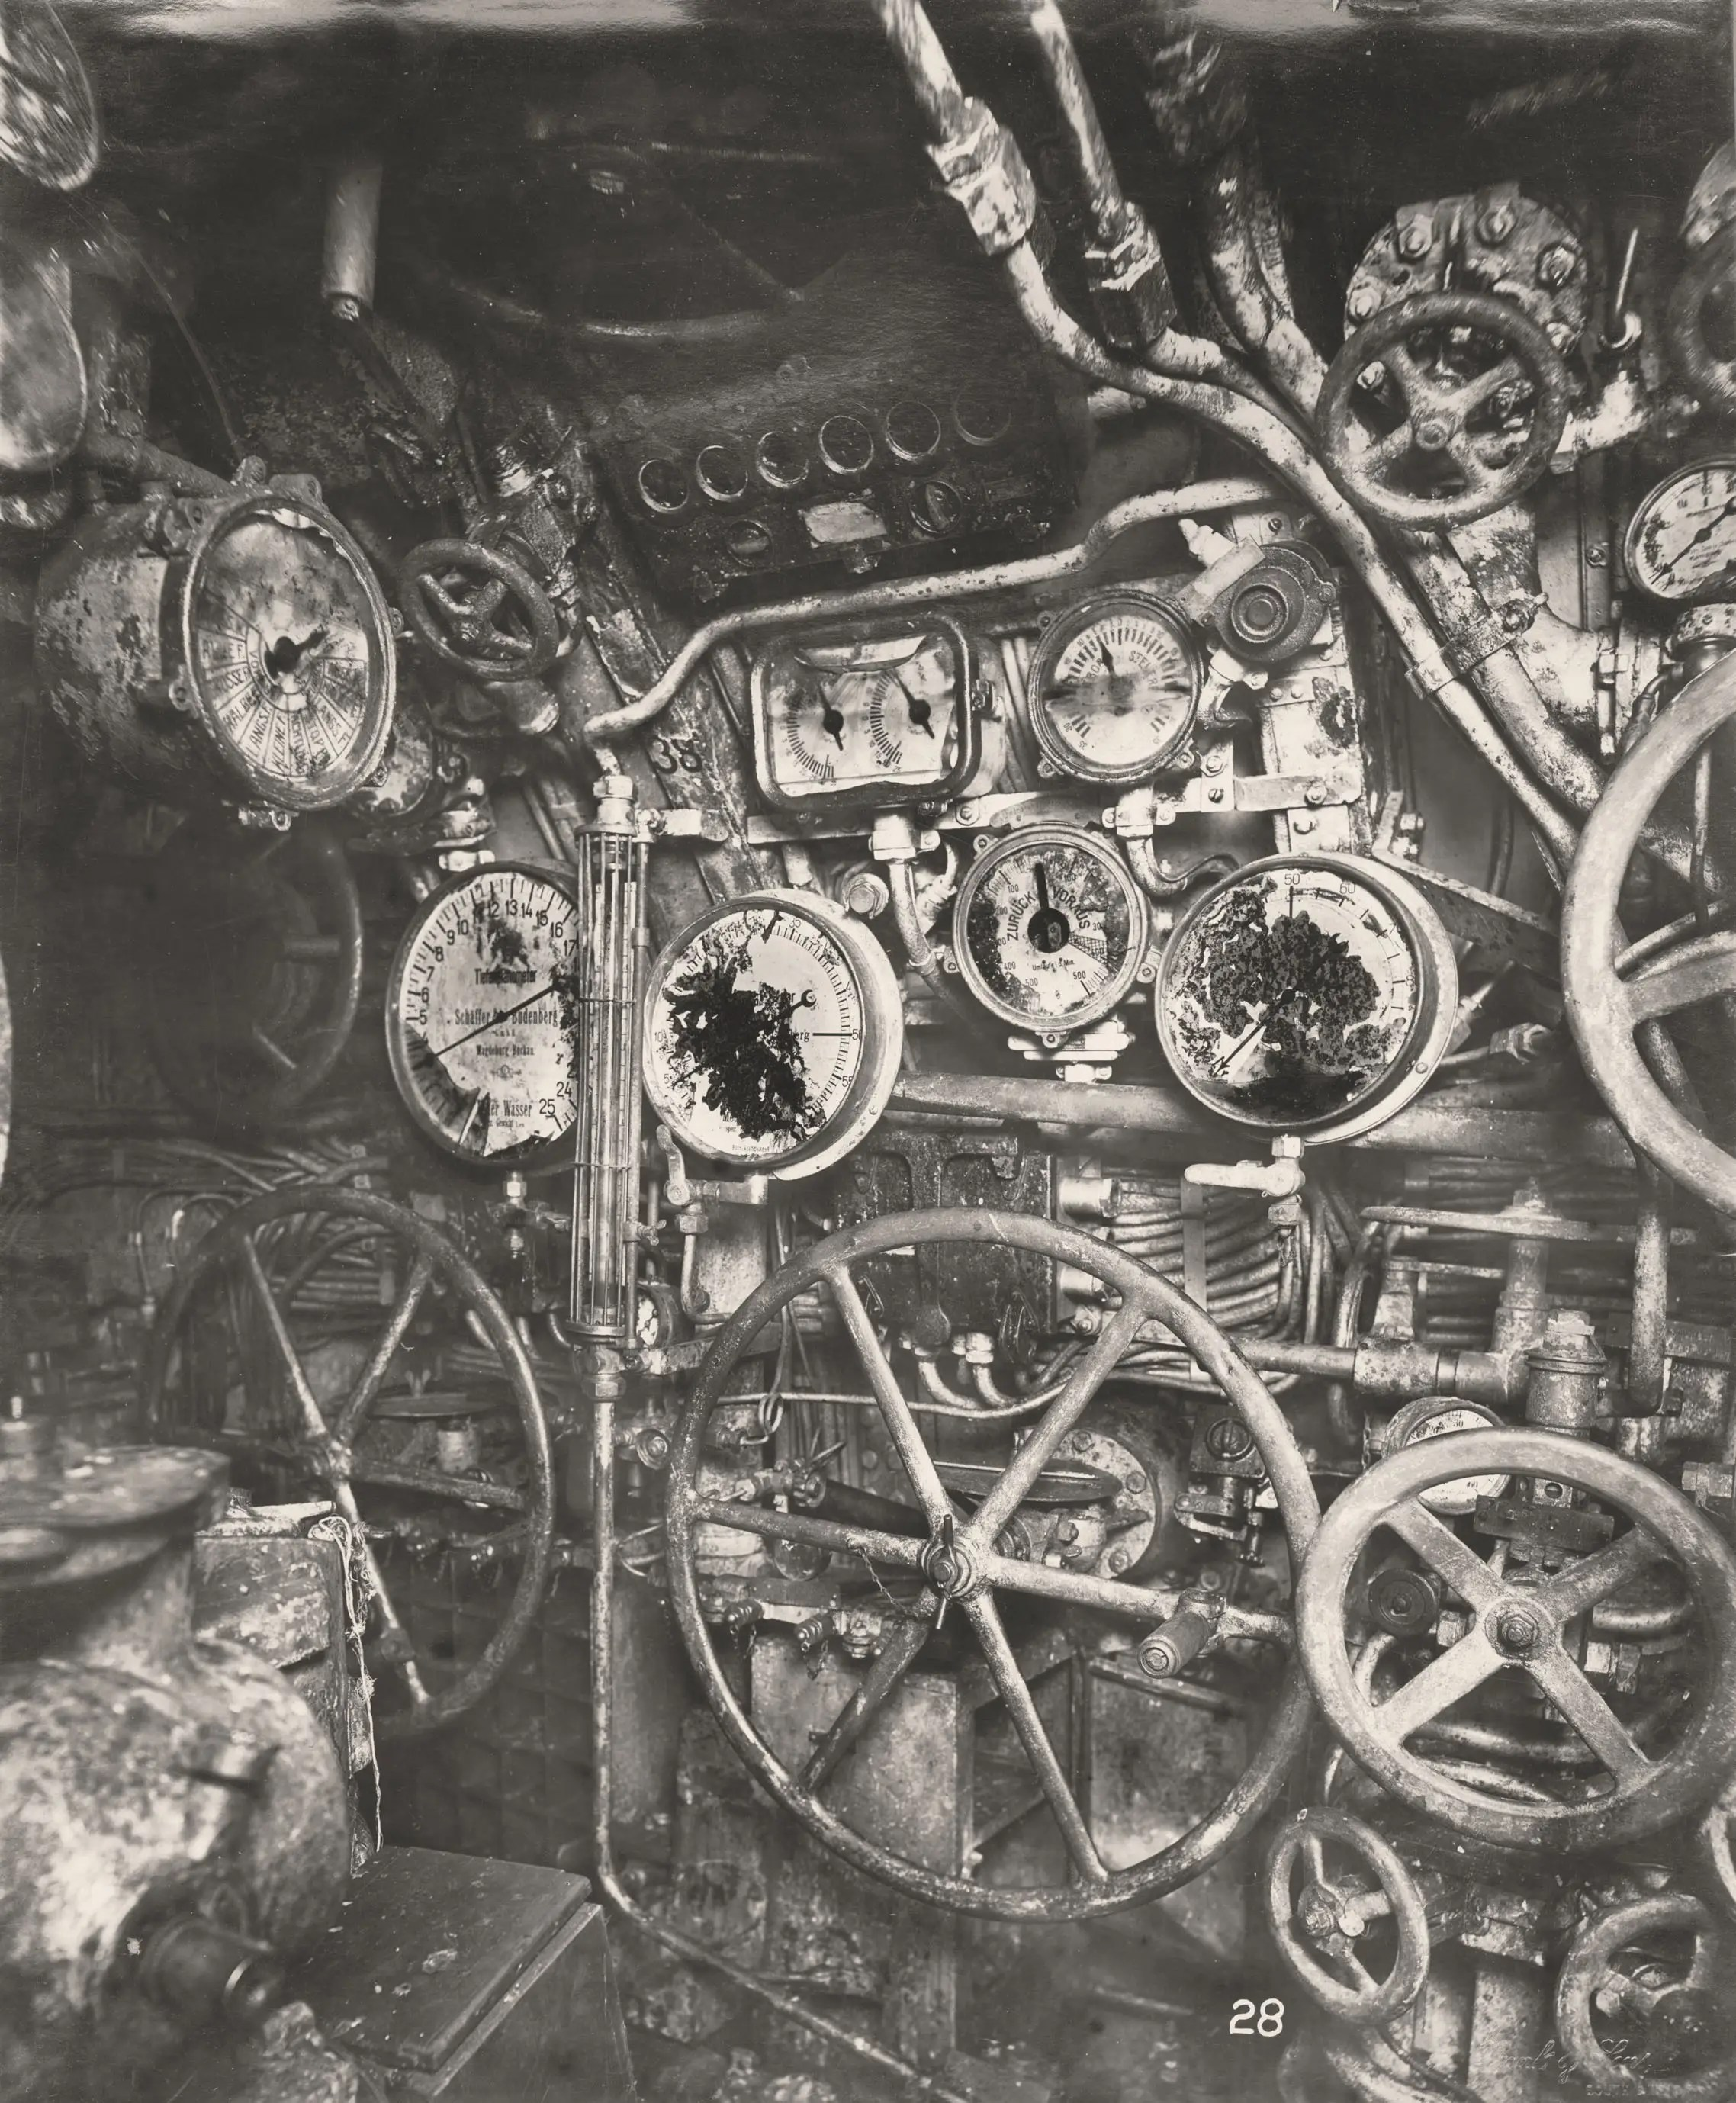 A Rare Glance Into The Heart Of A Wwi German U Boat